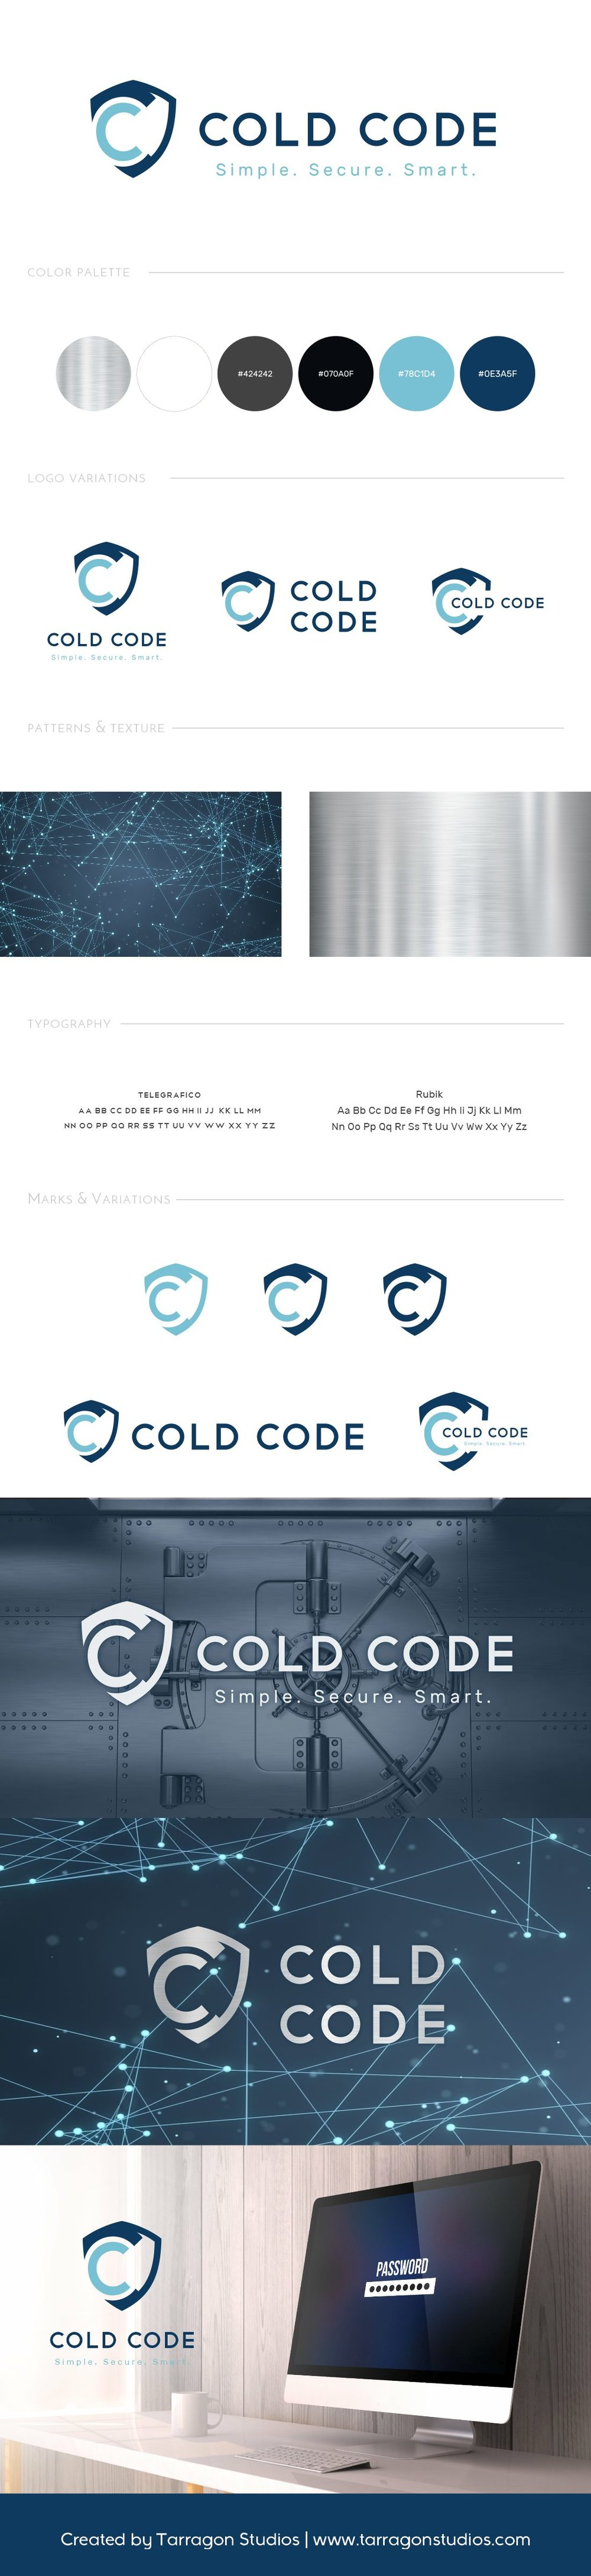 Cold Code Style Guide by Tarragon Studios